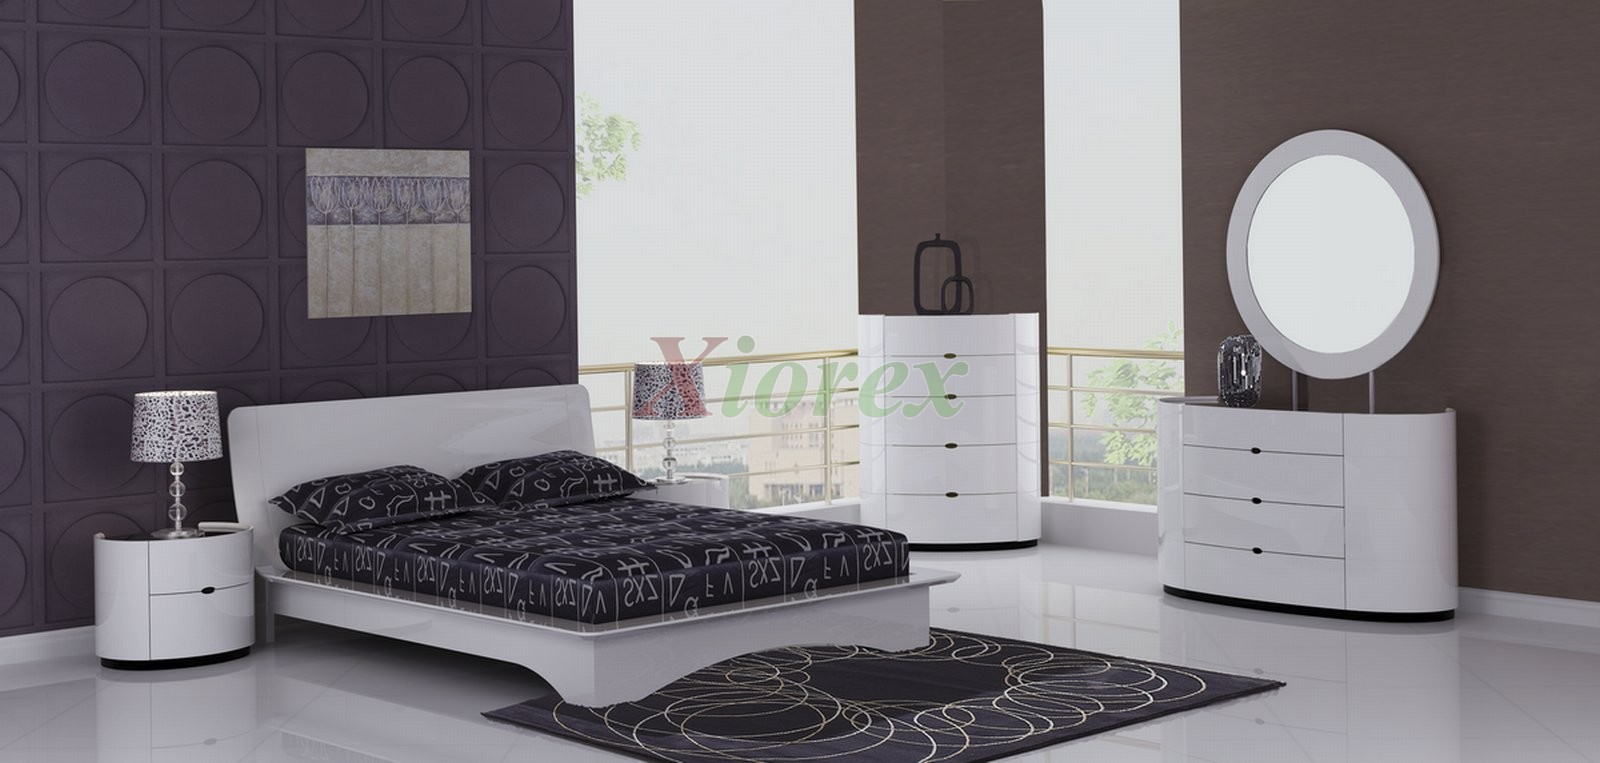 Eri all white modern bedroom furniture sets canada xiorex for Headboard and dresser